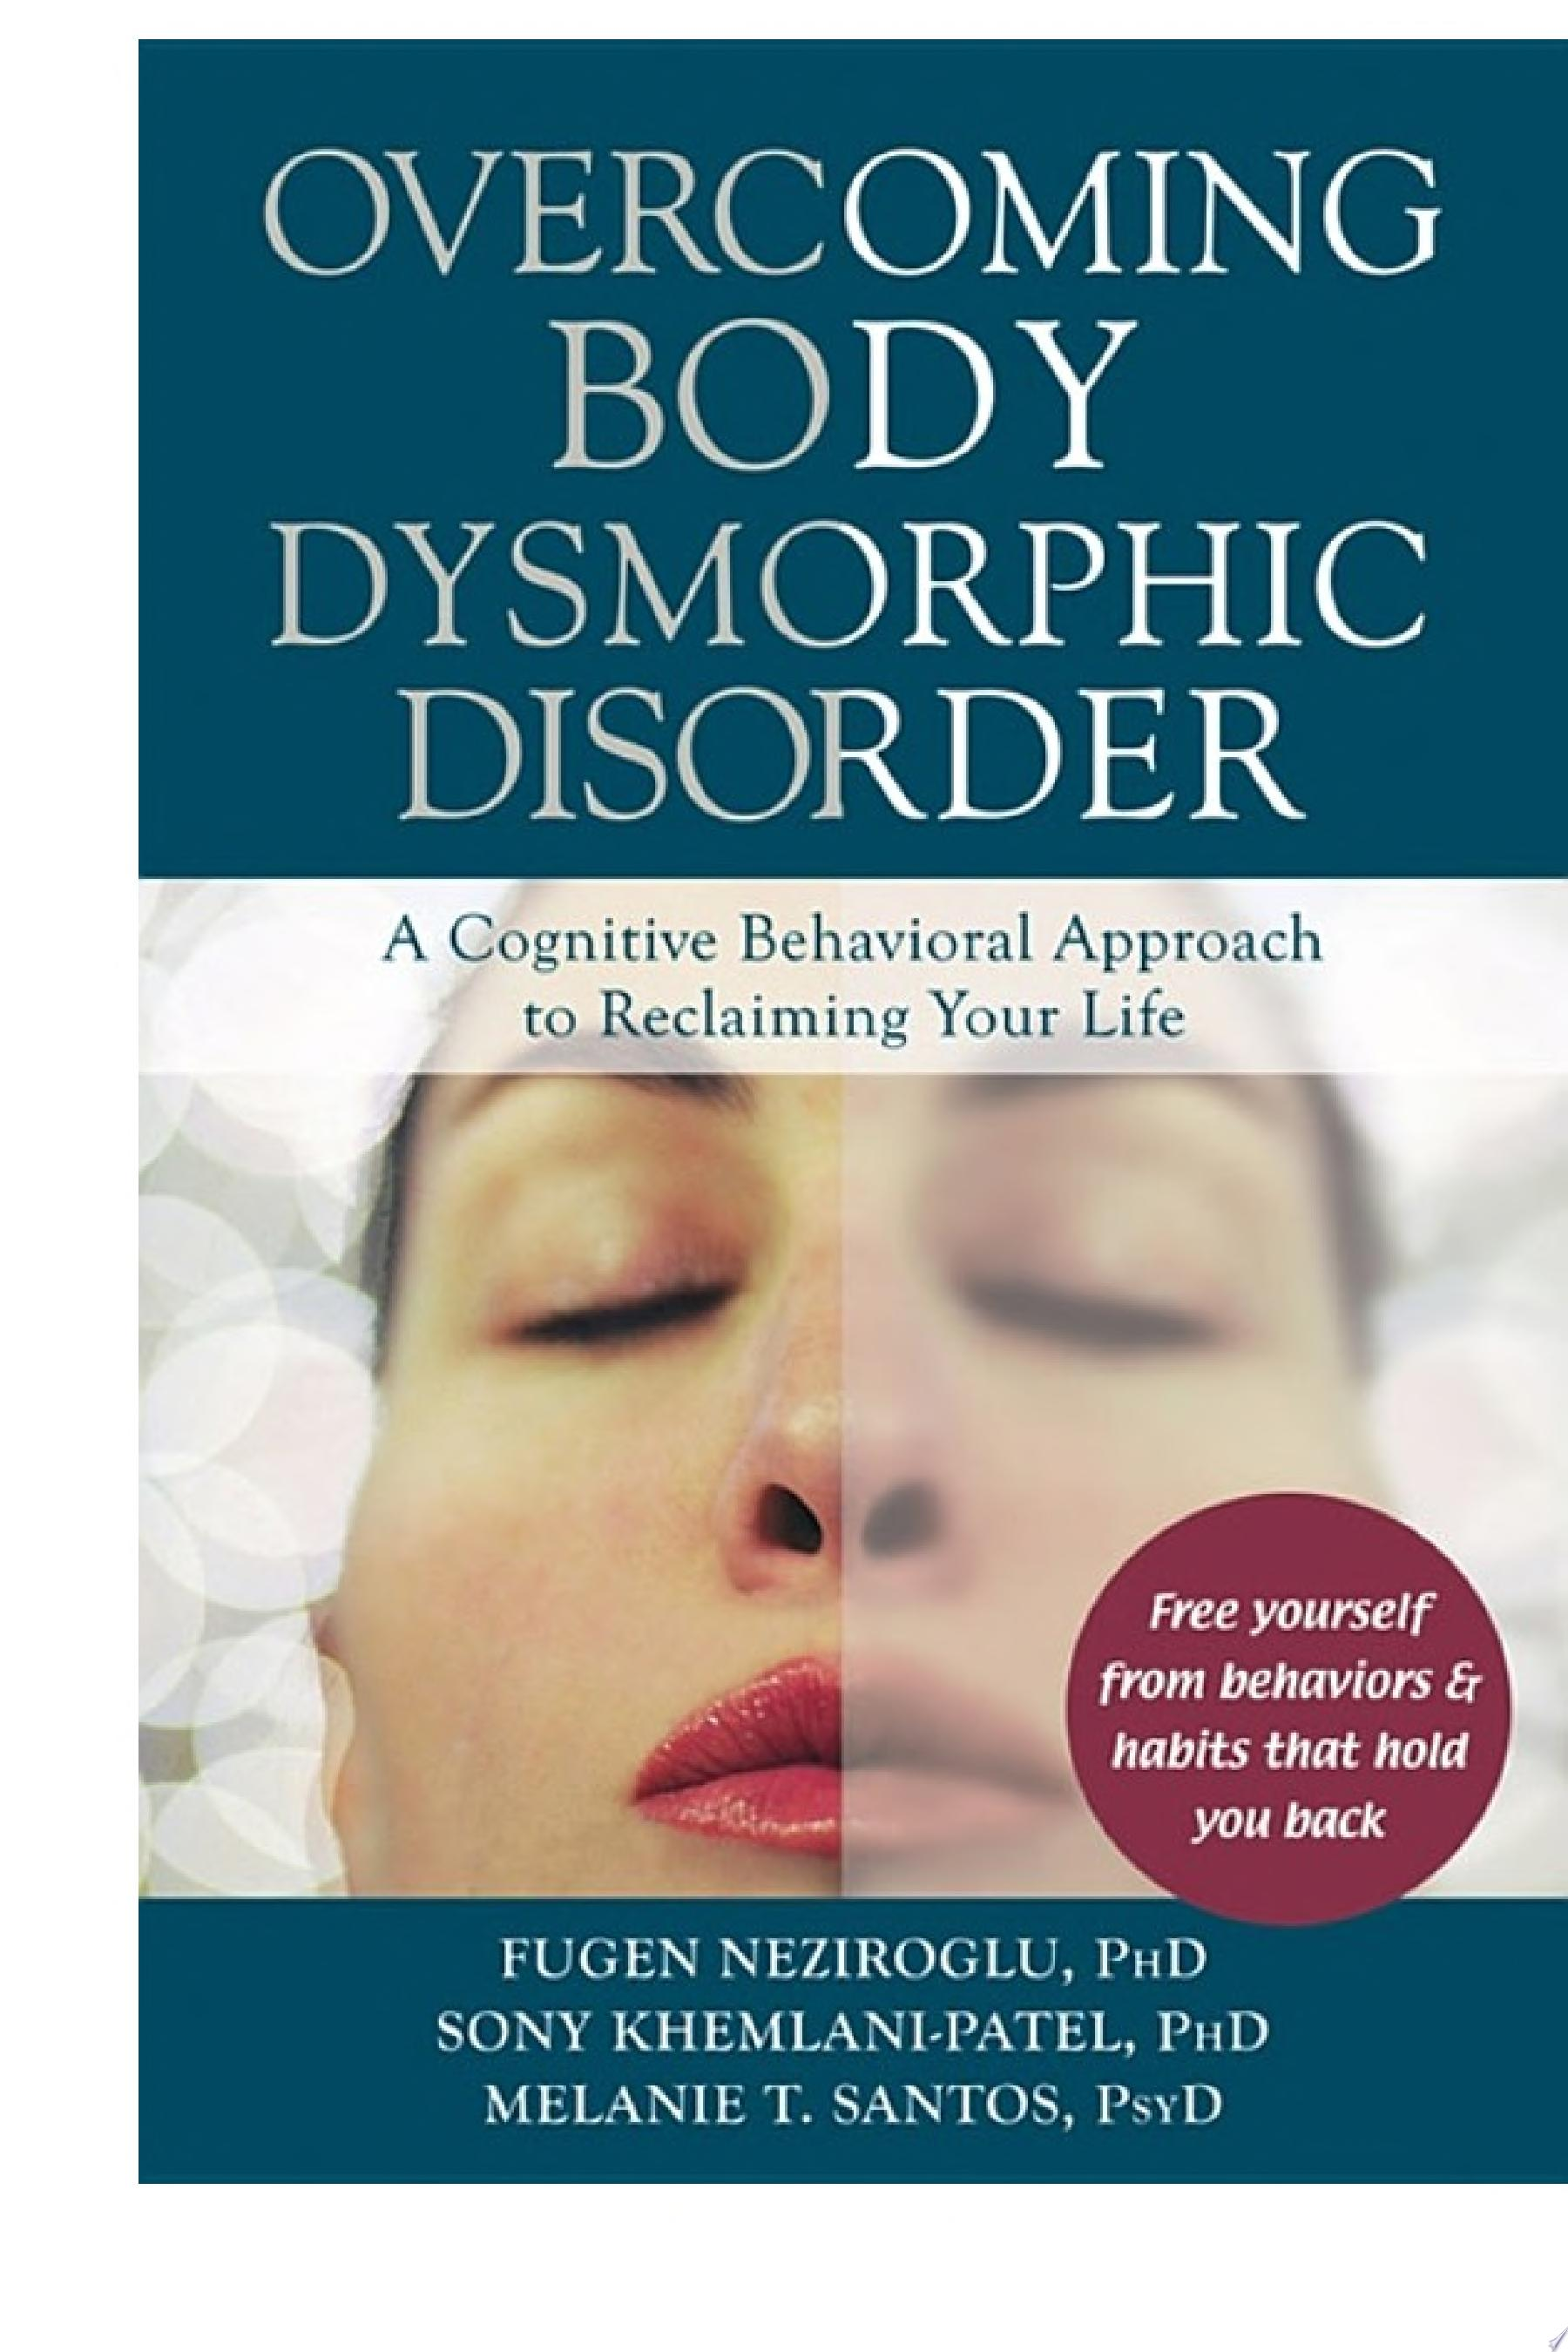 Overcoming Body Dysmorphic Disorder